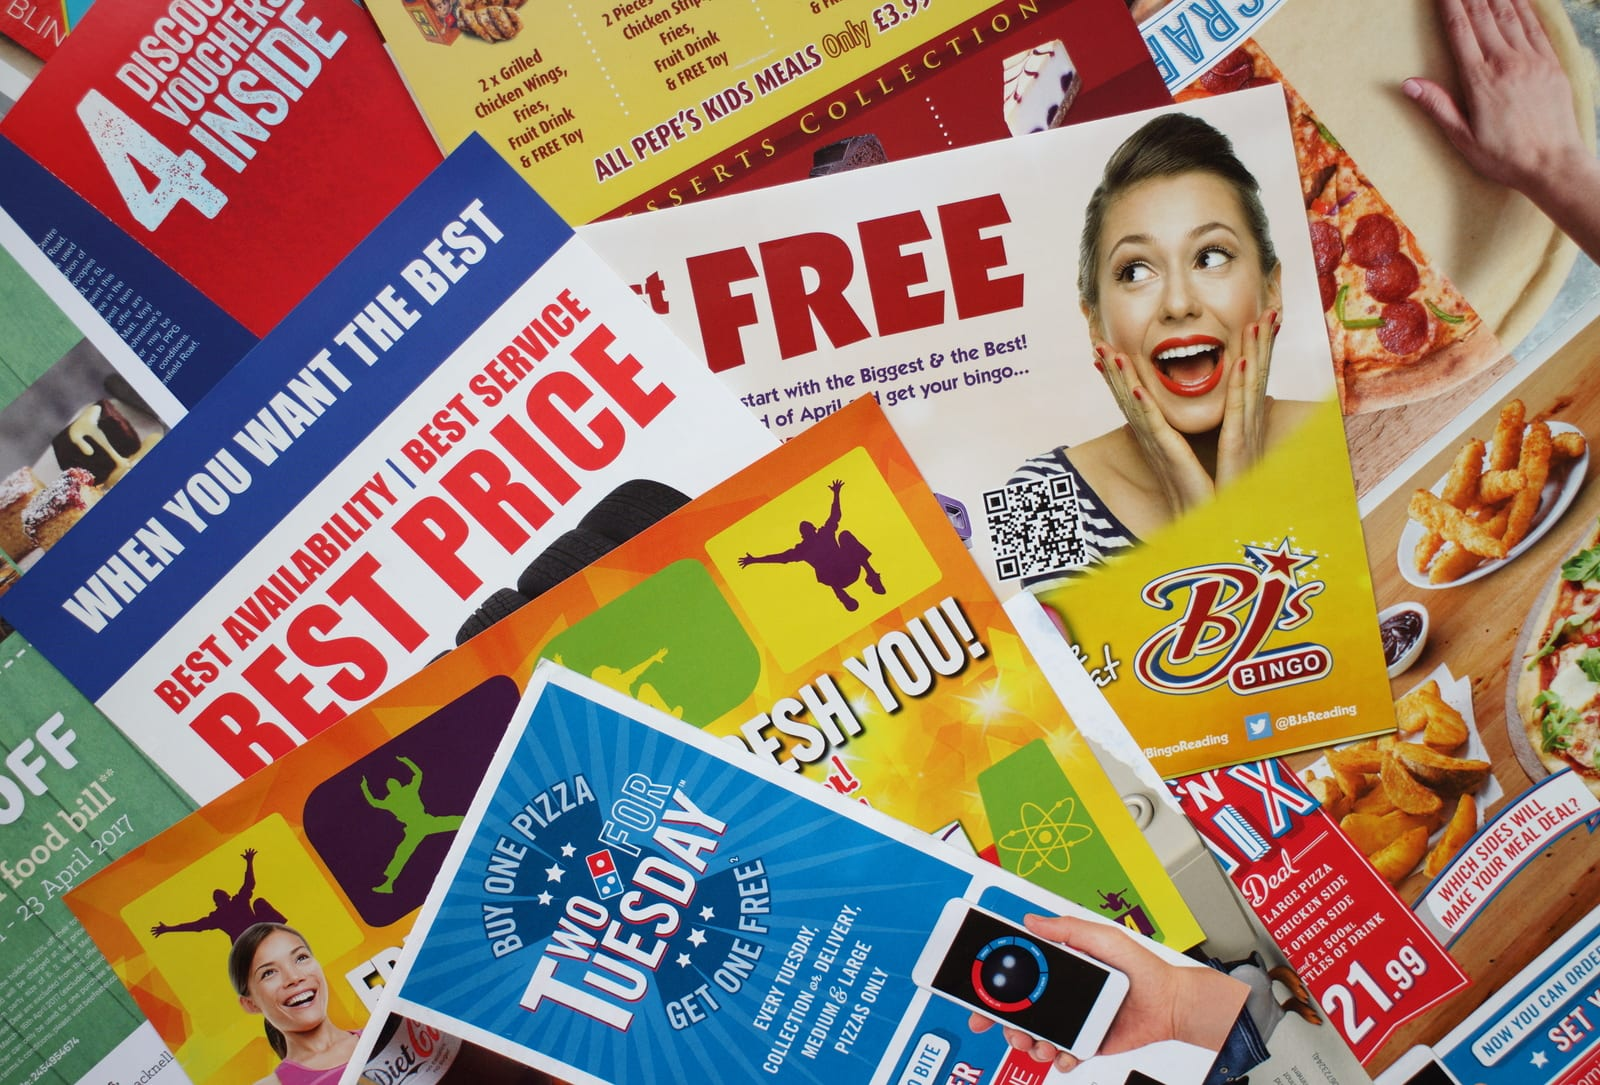 Sample of leaflets and brochures or Junk Mail delivered to a private address in Bracknell, England to advertise local retail and service businesses